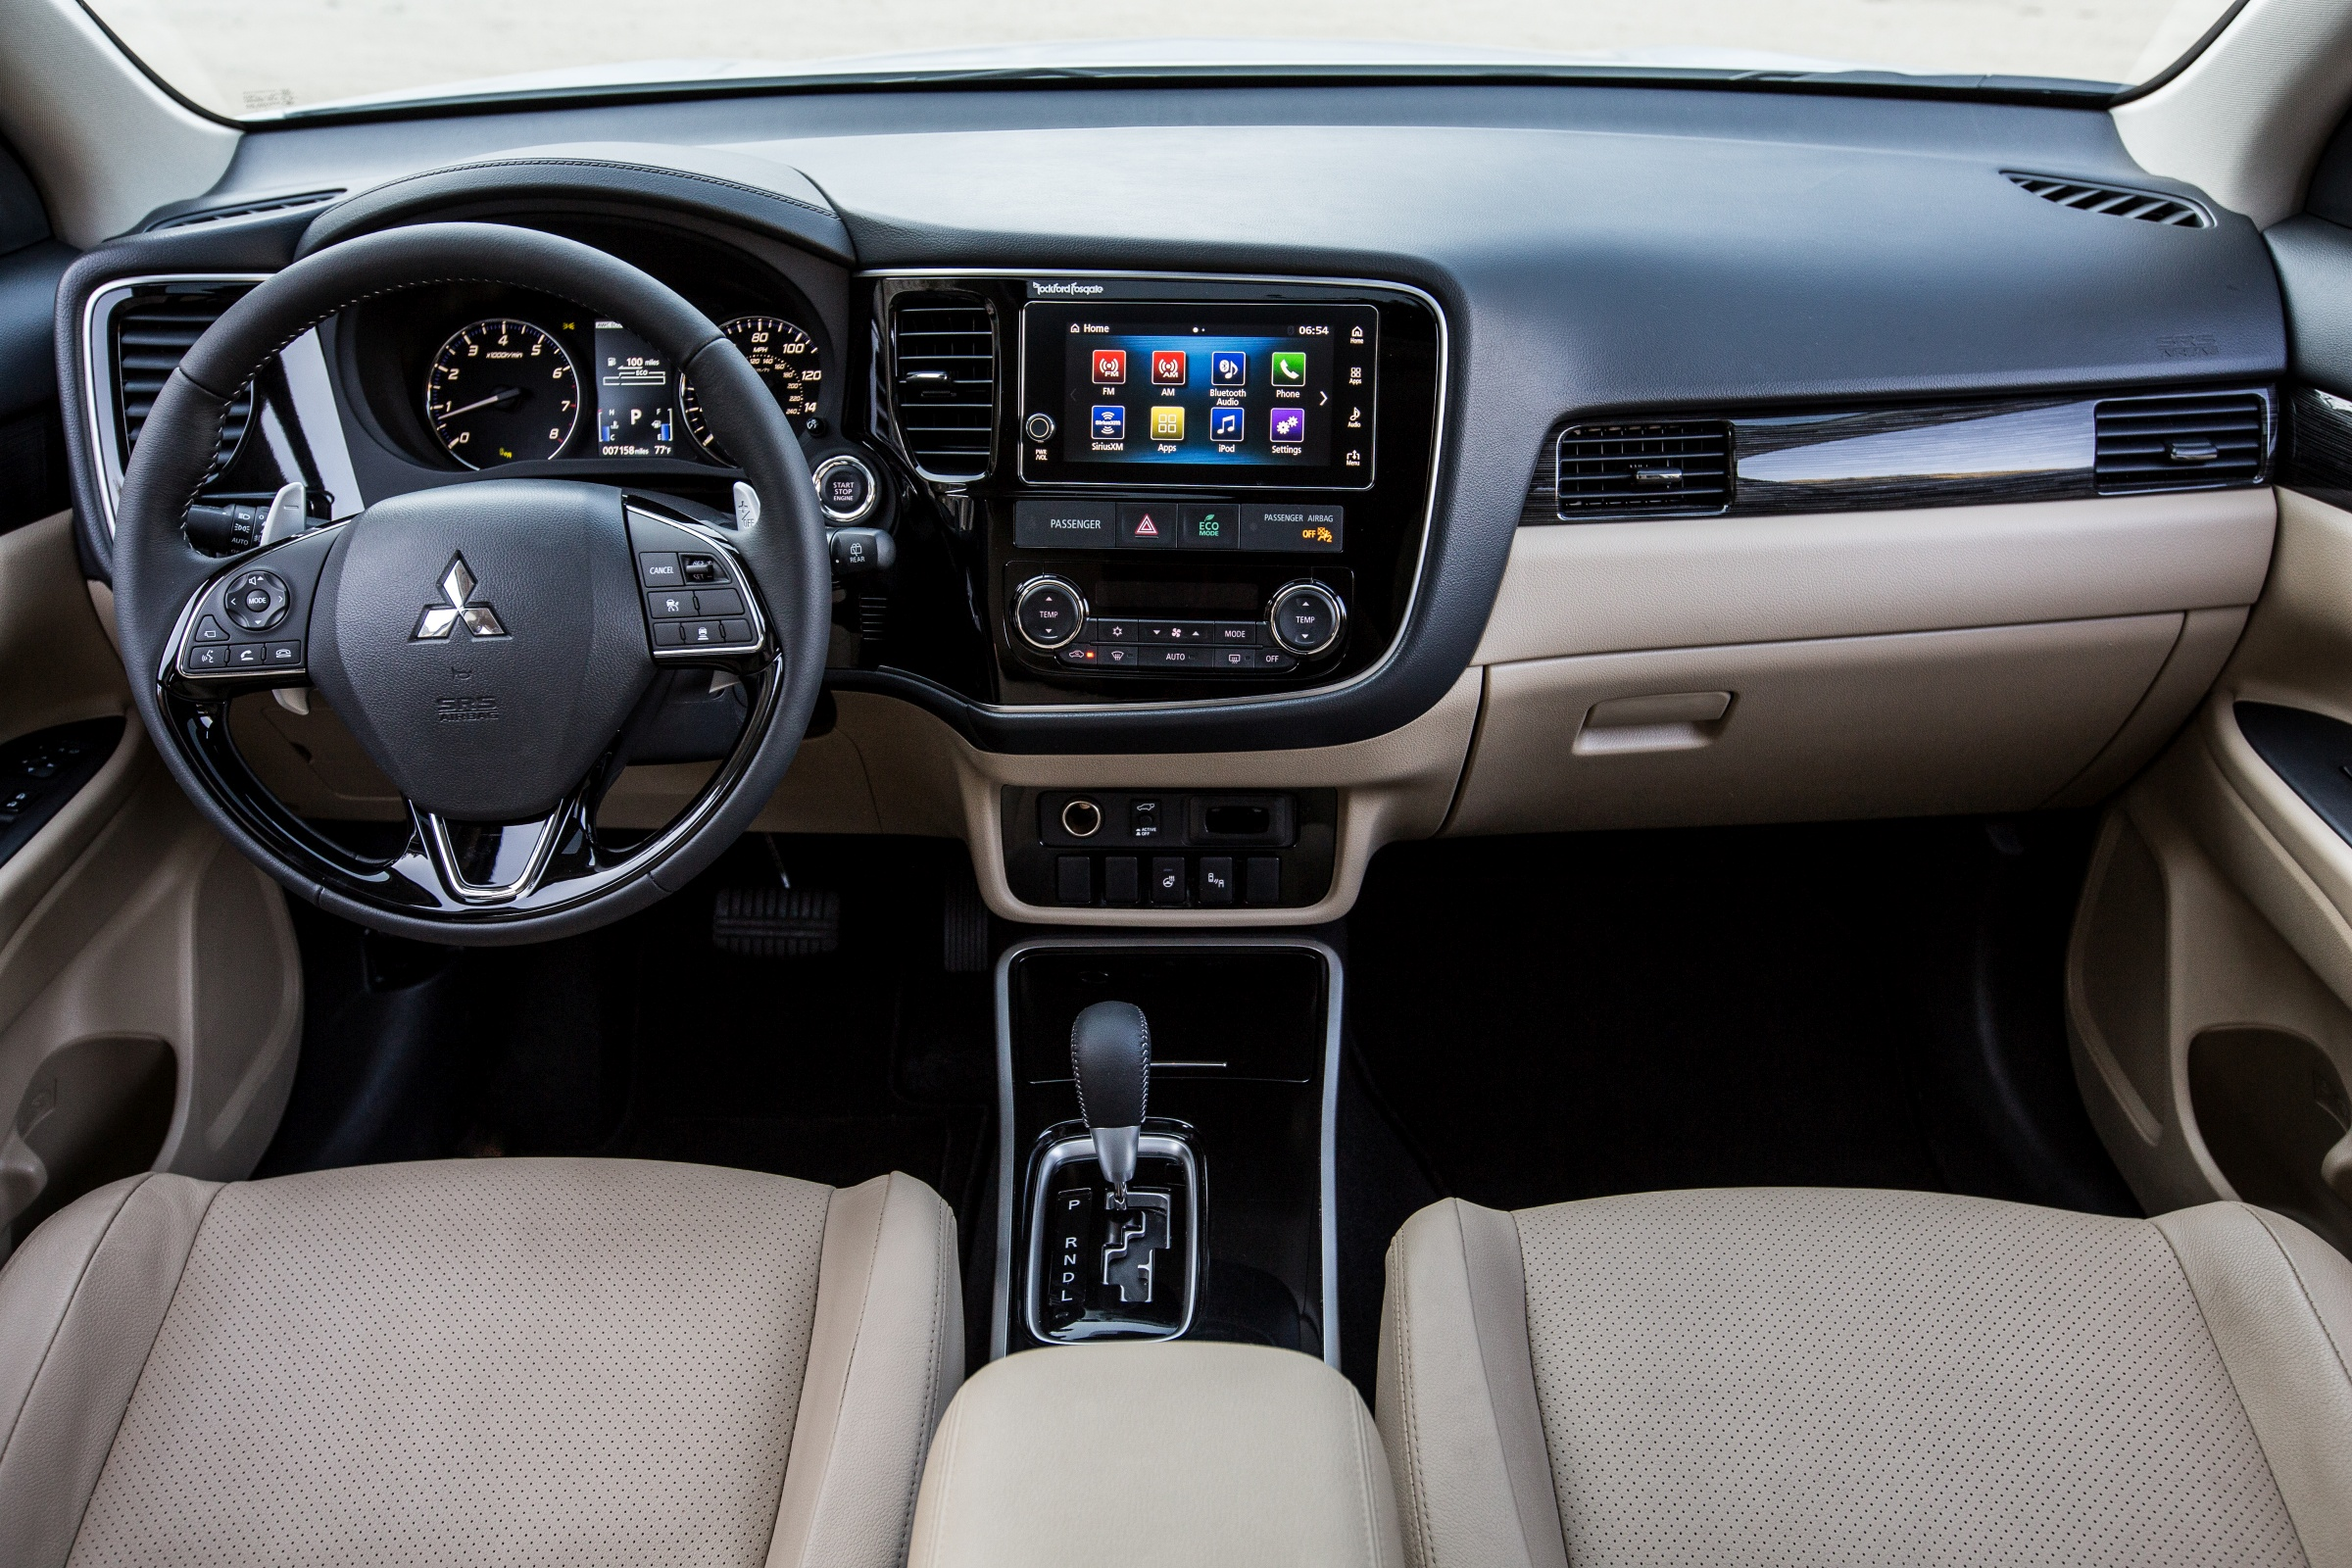 2018 mitsubishi outlander sel the epoch times for Mitsubishi outlander interior